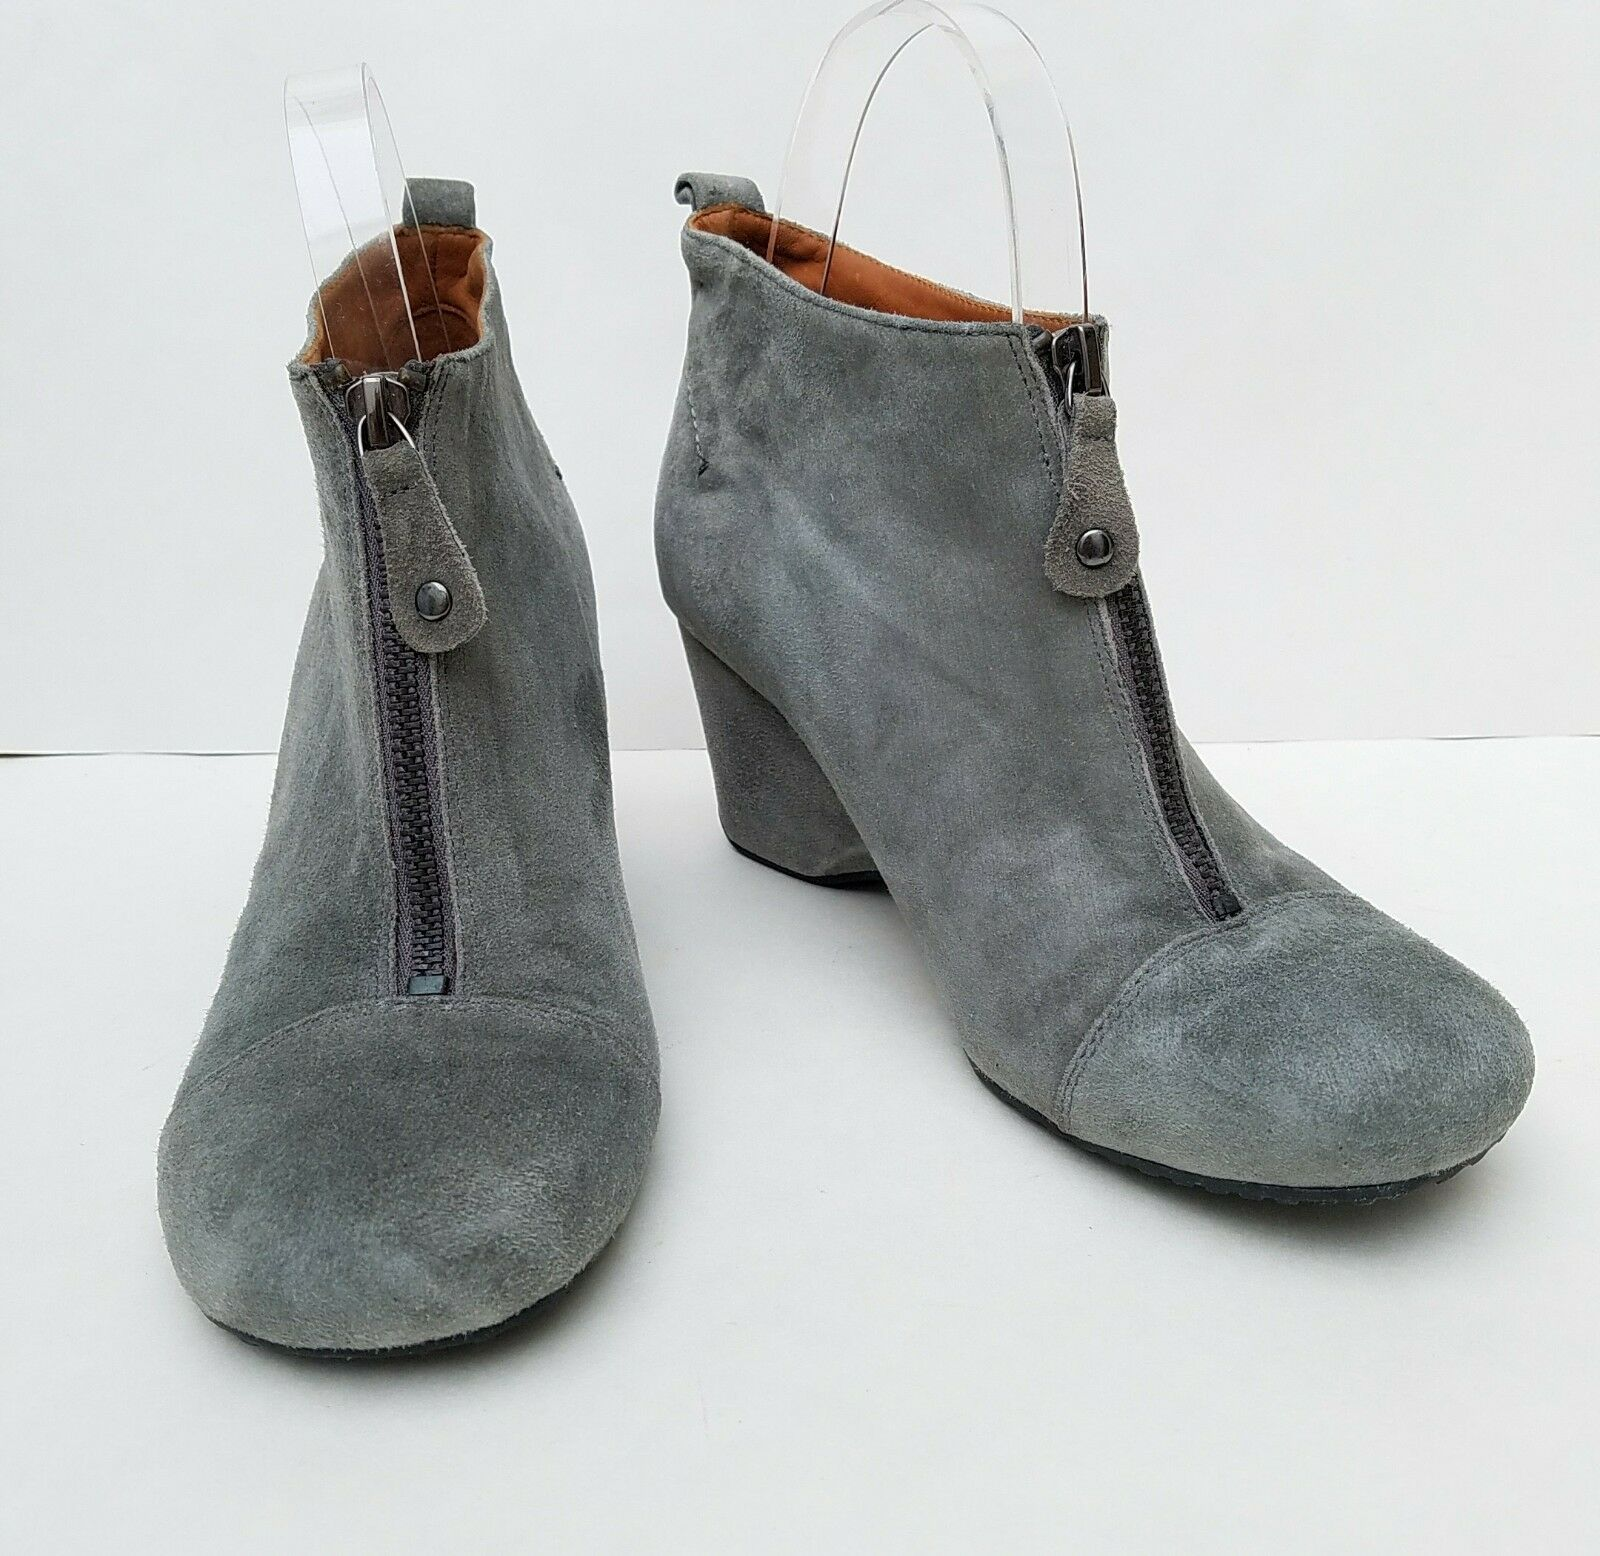 NEW Womens Sz 7 Gentle Souls 'Ridgual' GREY Leather Ankle Boot Bootie Wedge Zip